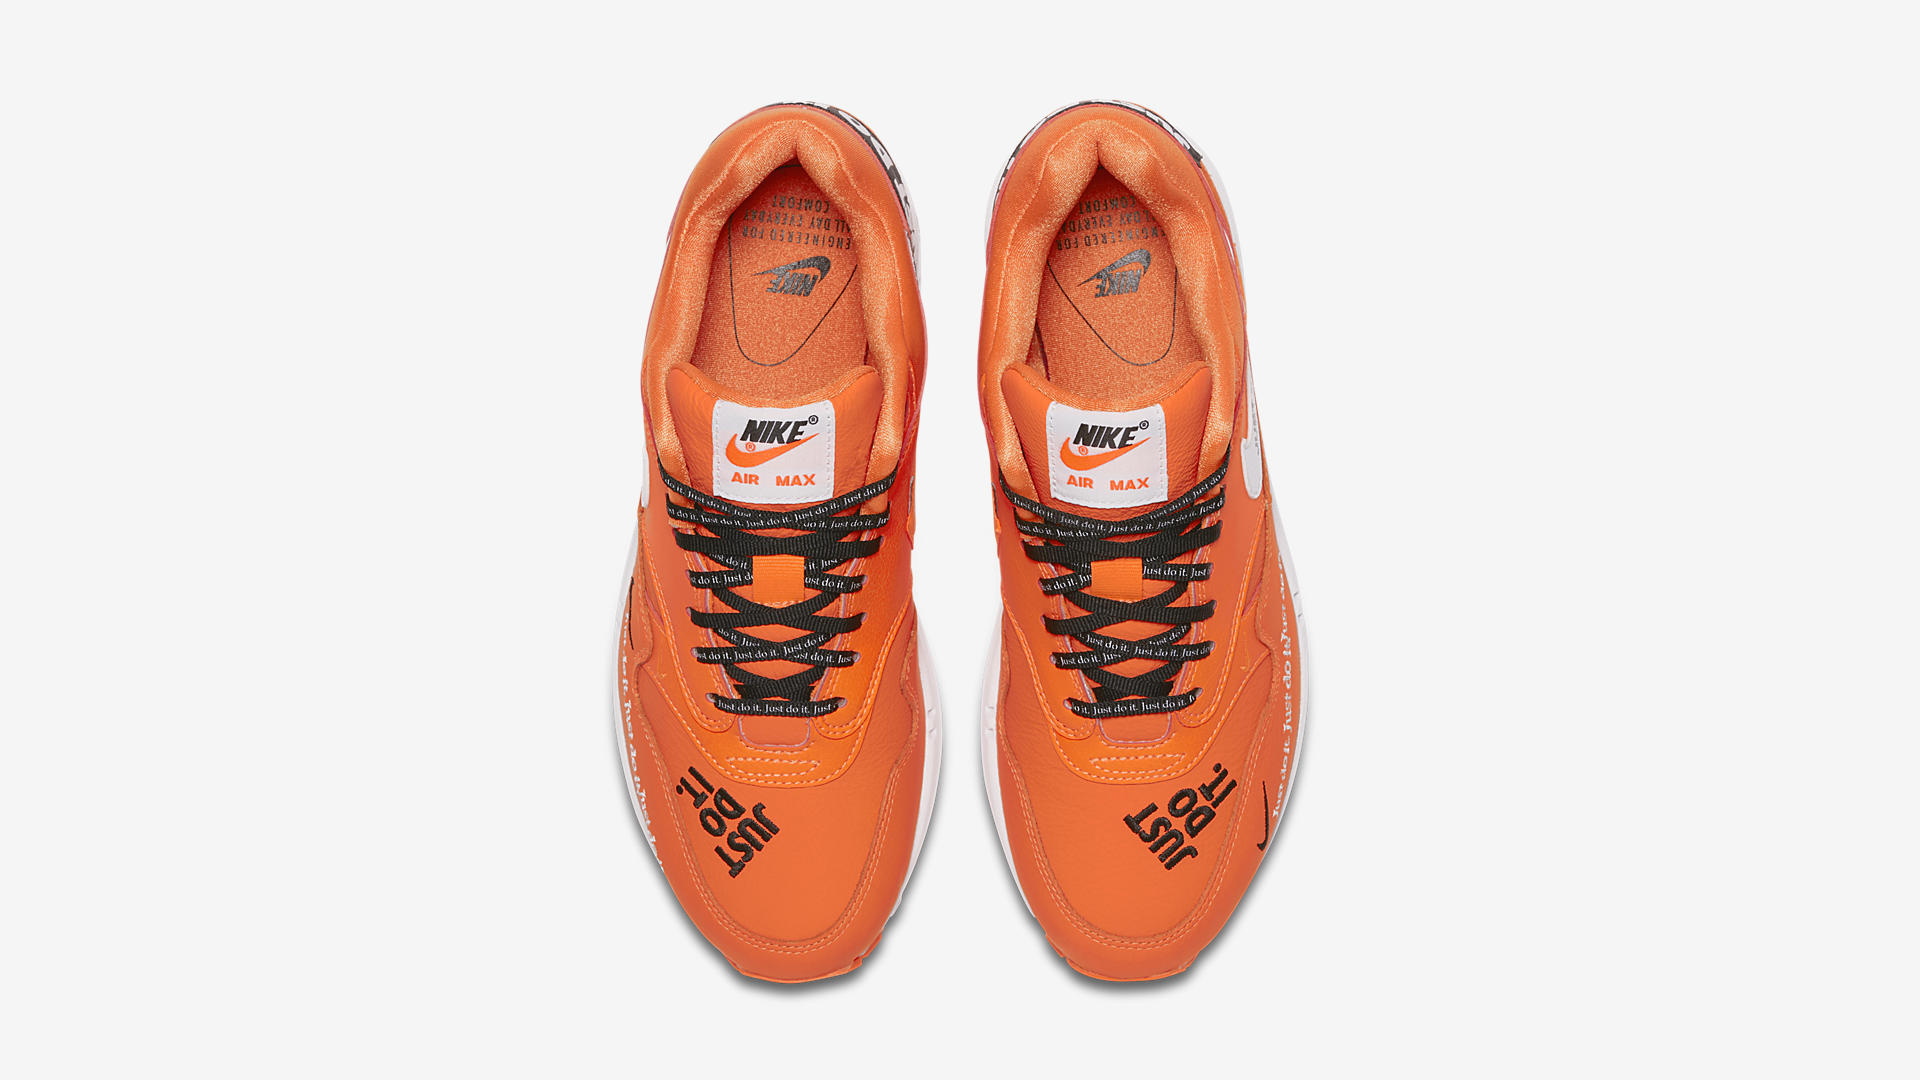 Nike Air Max 1 LX JDI Total Orange/Wit/Zwart (917691-800)